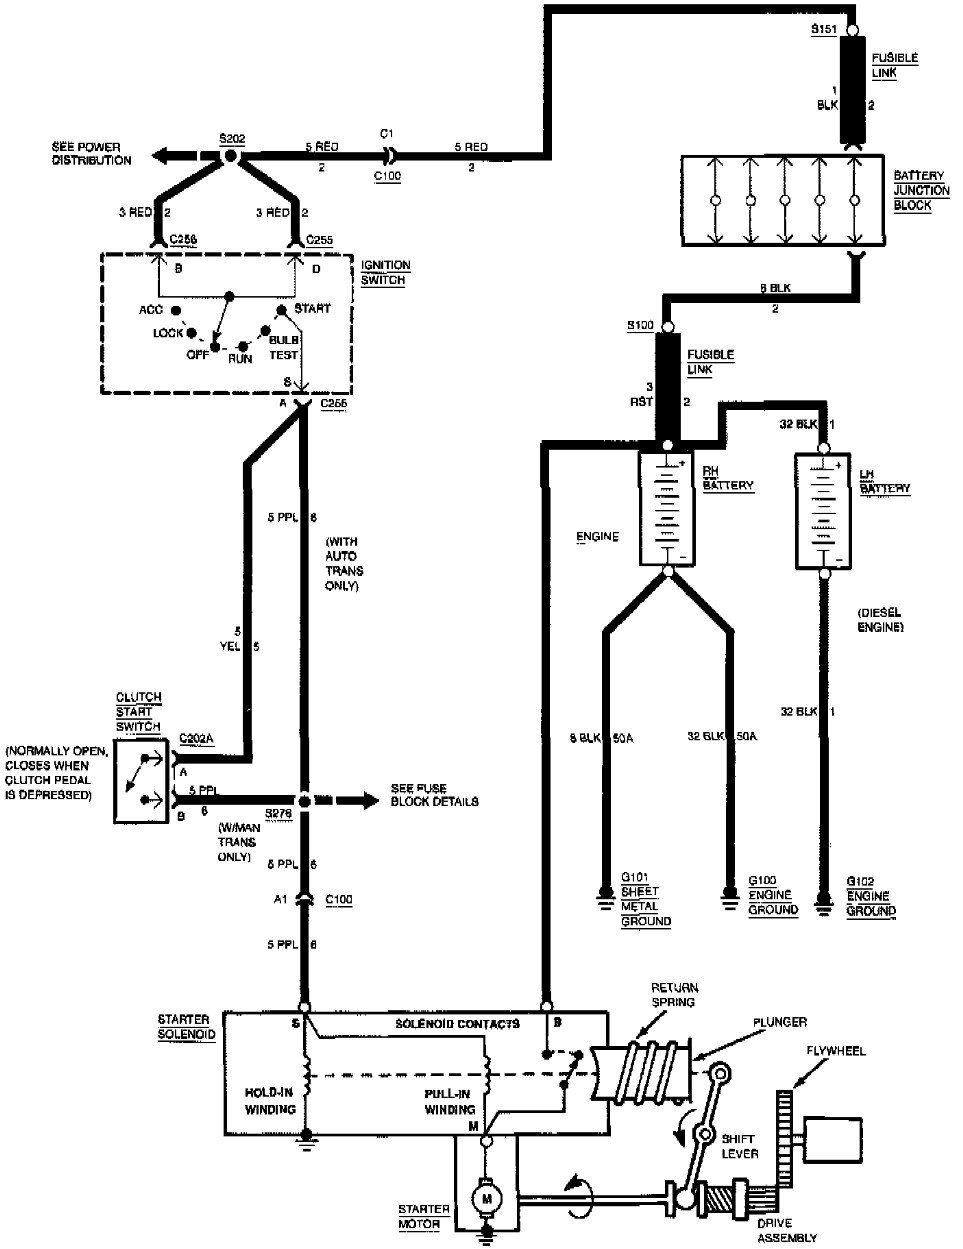 1995 chevy 3500 wiring diagram chevy 350 coil wiring